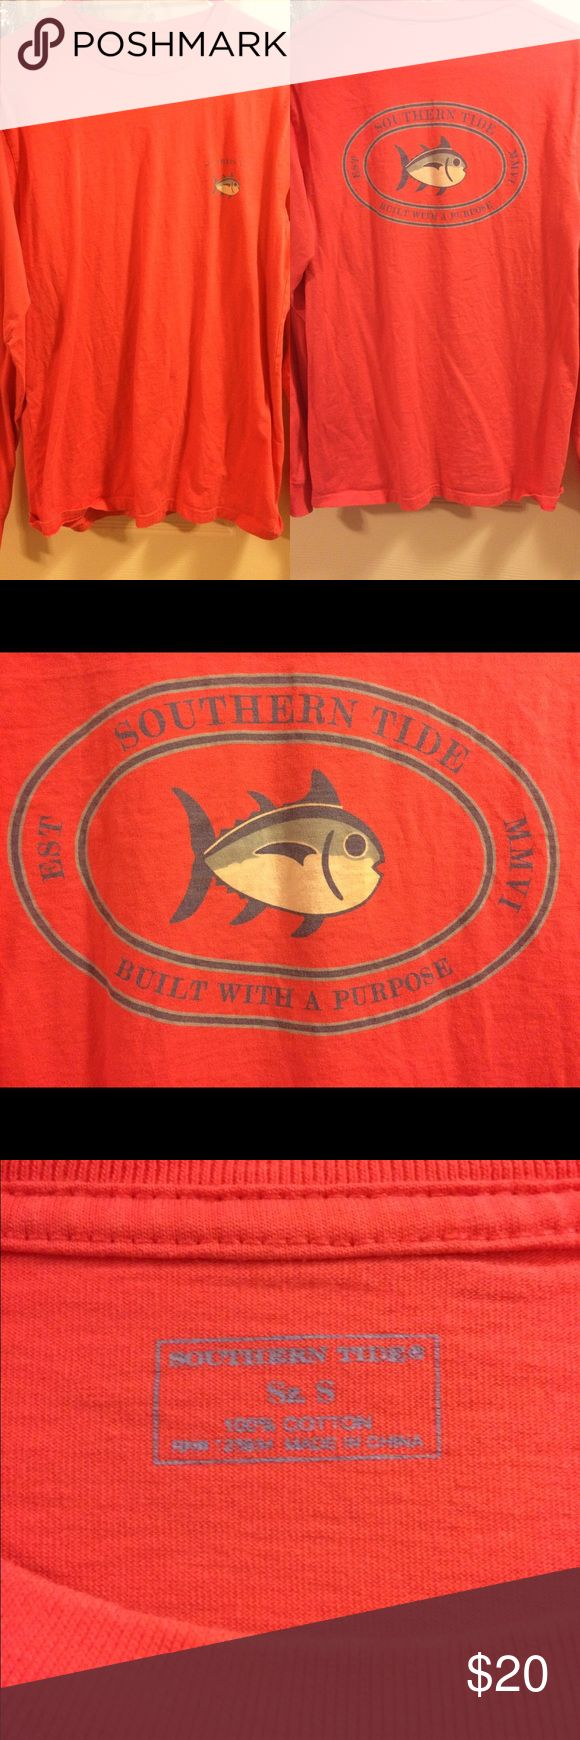 Southern Tide long sleeve coral shirt Worn a few times but just like new!! Smoke free home. Open to reasonable offers Southern Tide Shirts Tees - Long Sleeve